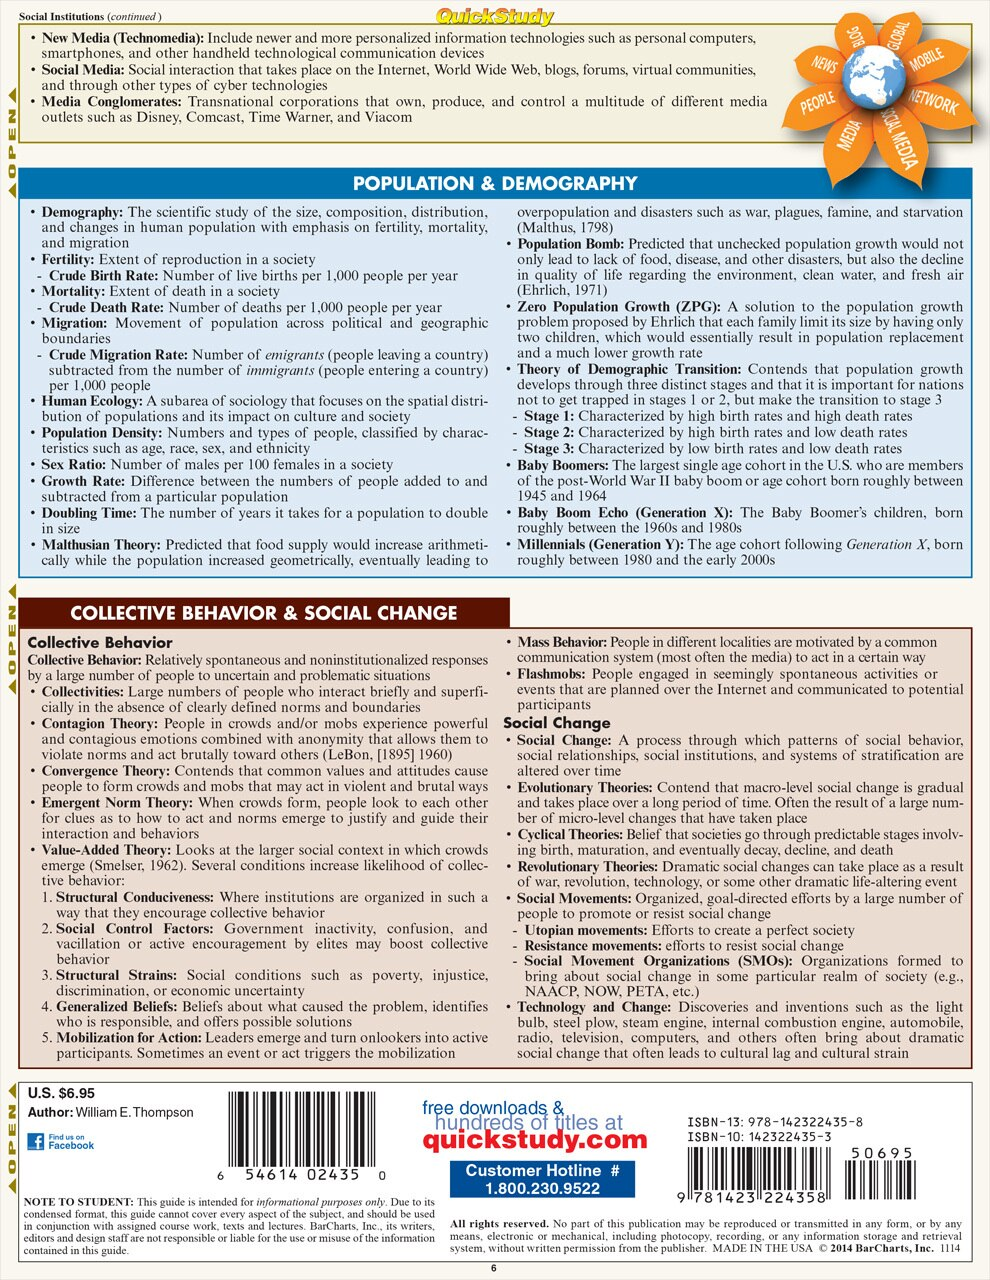 Quick Study QuickStudy Sociology Laminated Study Guide BarCharts Publishing Social Science Guide Back Image